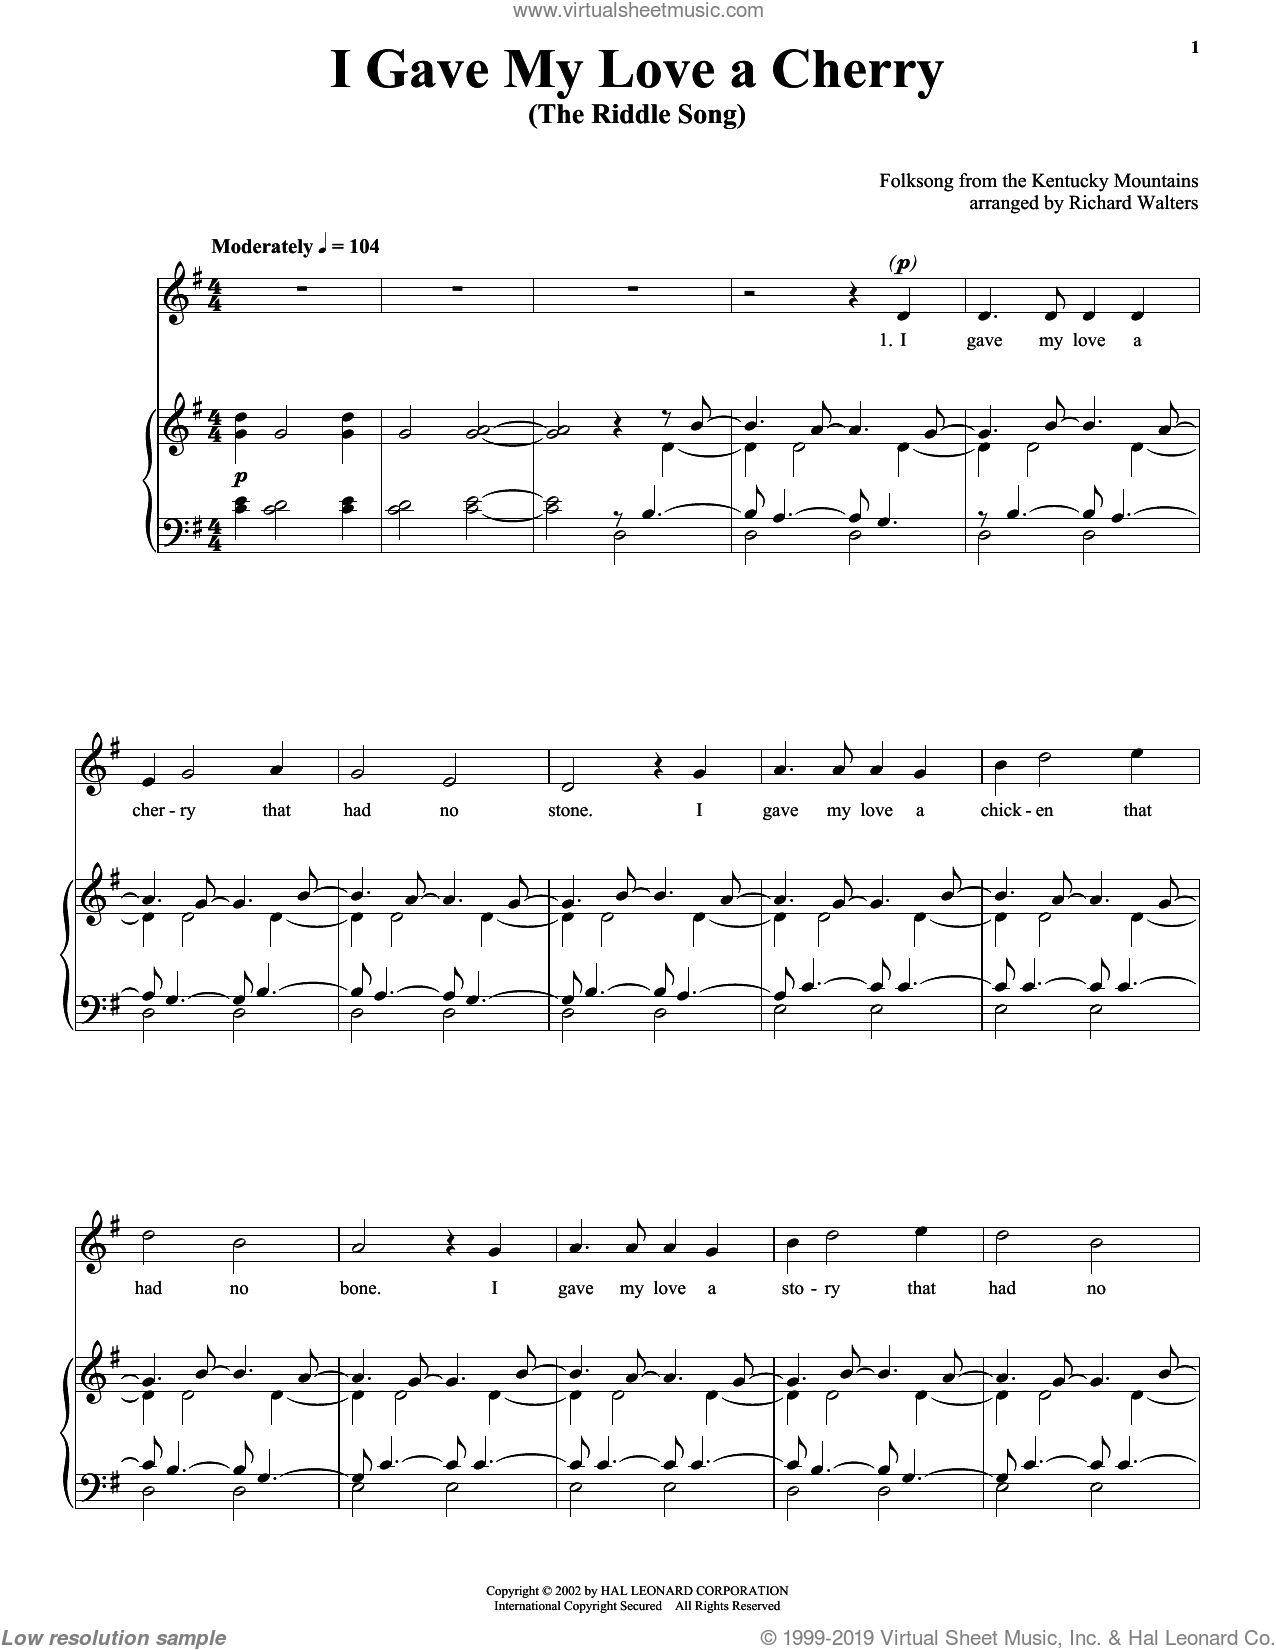 I Gave My Love A Cherry (The Riddle Song) sheet music for voice, piano or guitar. Score Image Preview.